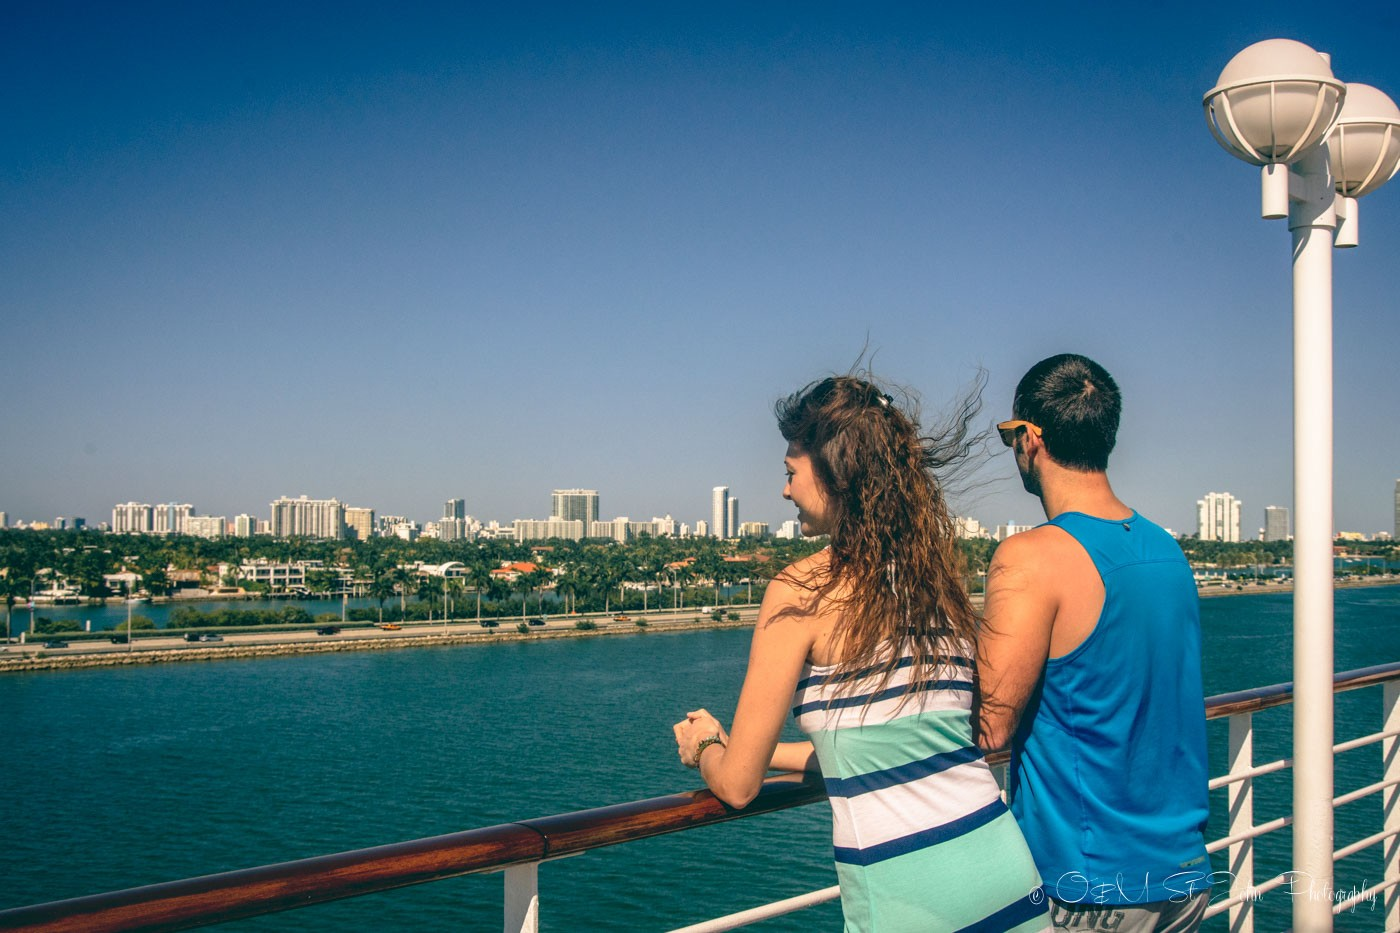 En route to the Dominican Republic with Fathom Travel